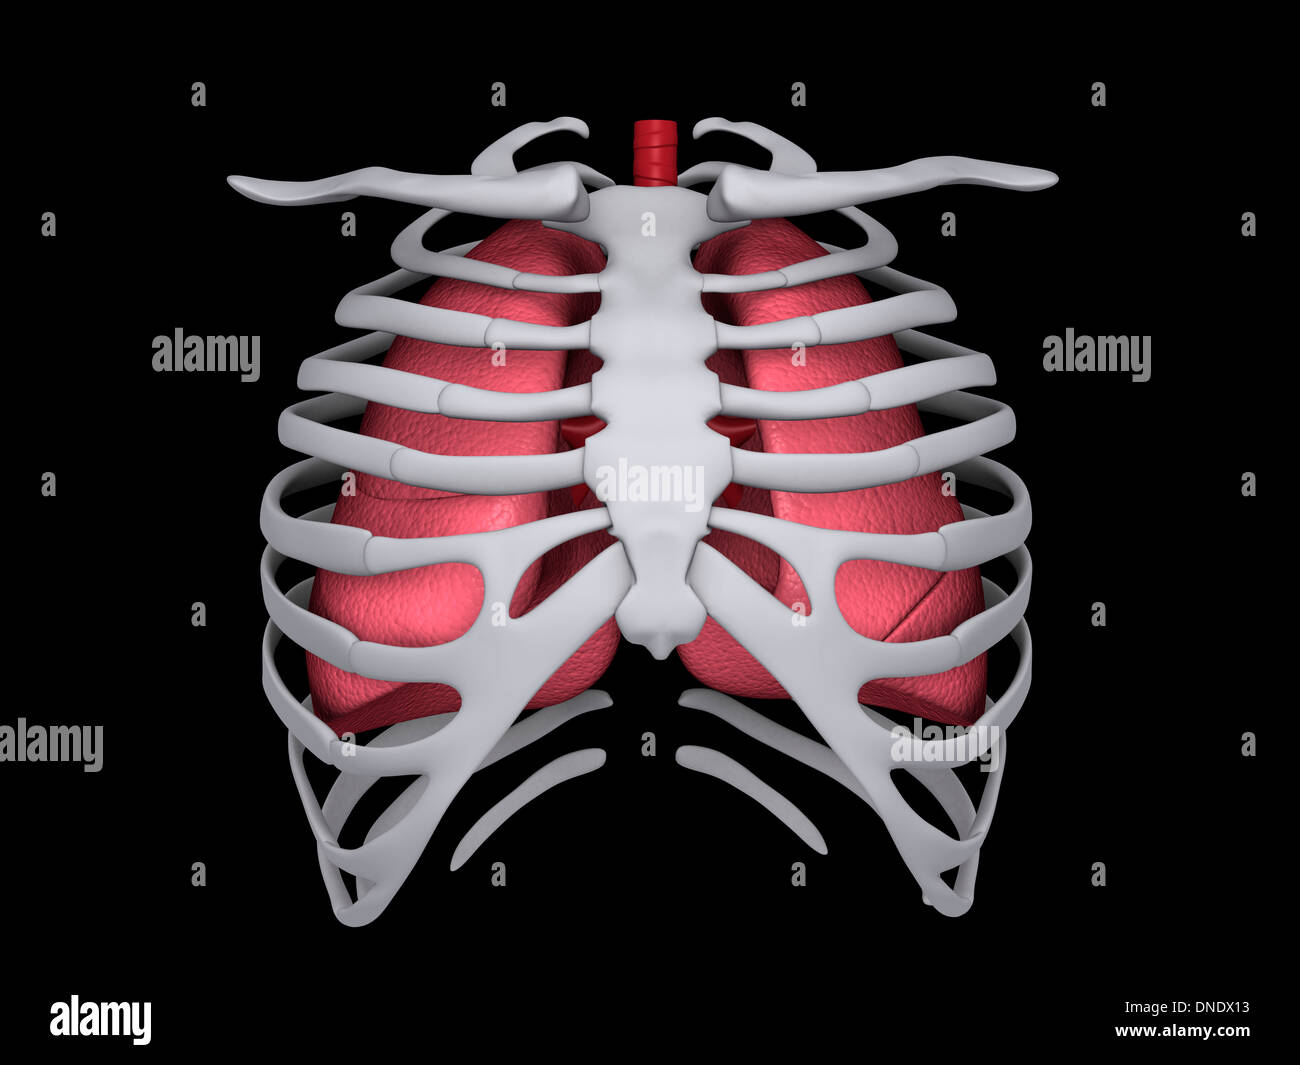 Conceptual image of human lungs and rib cage. - Stock Image